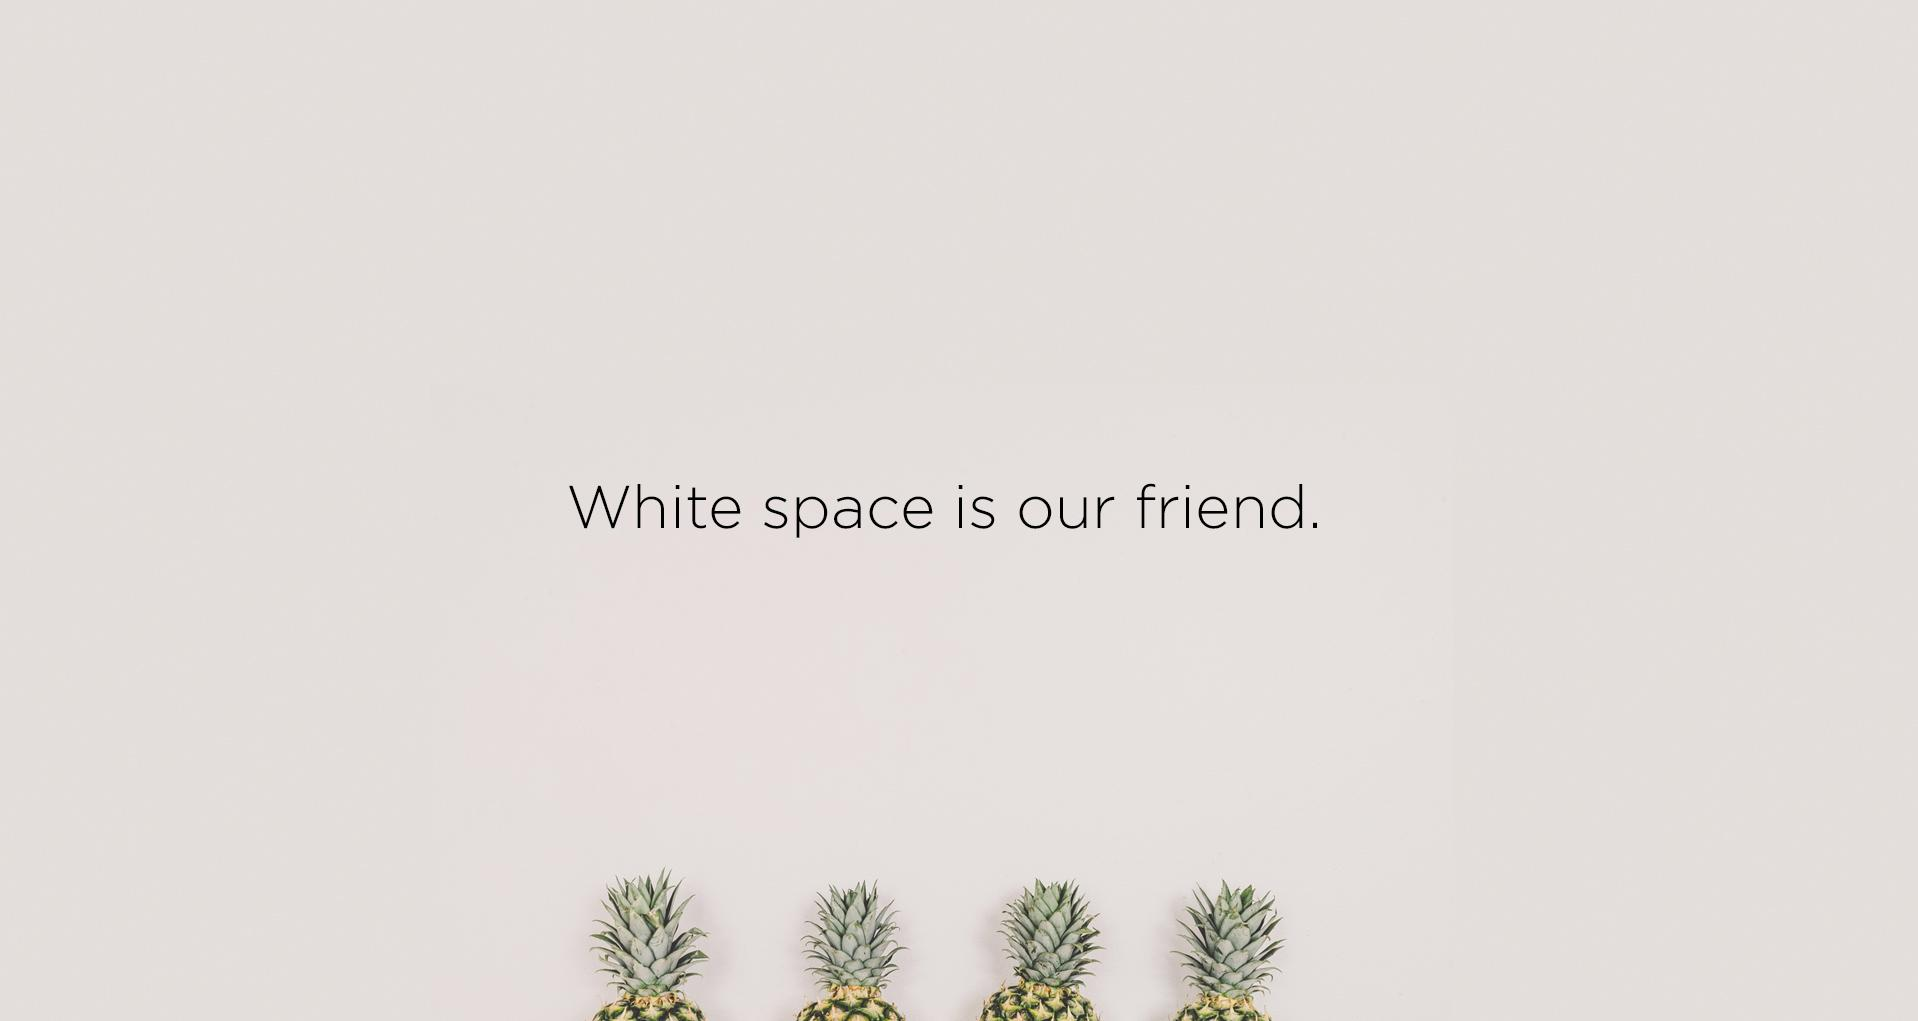 White space is our friend